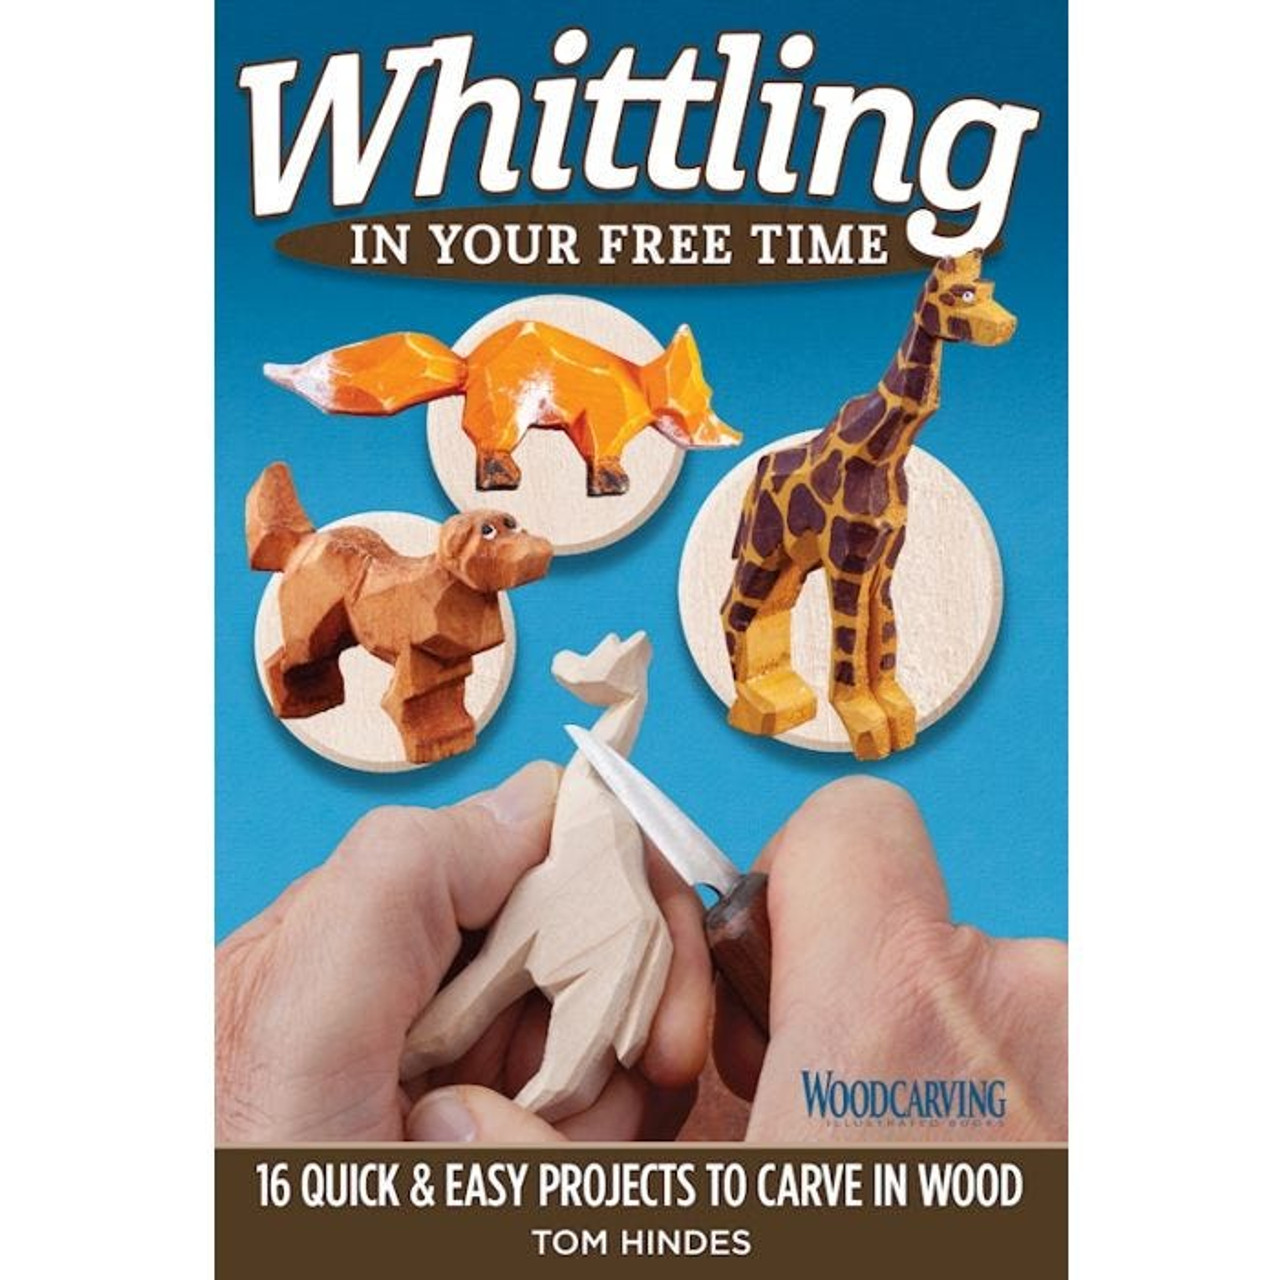 Whittling is fun and easy with a little help from Author Tom Hindes.